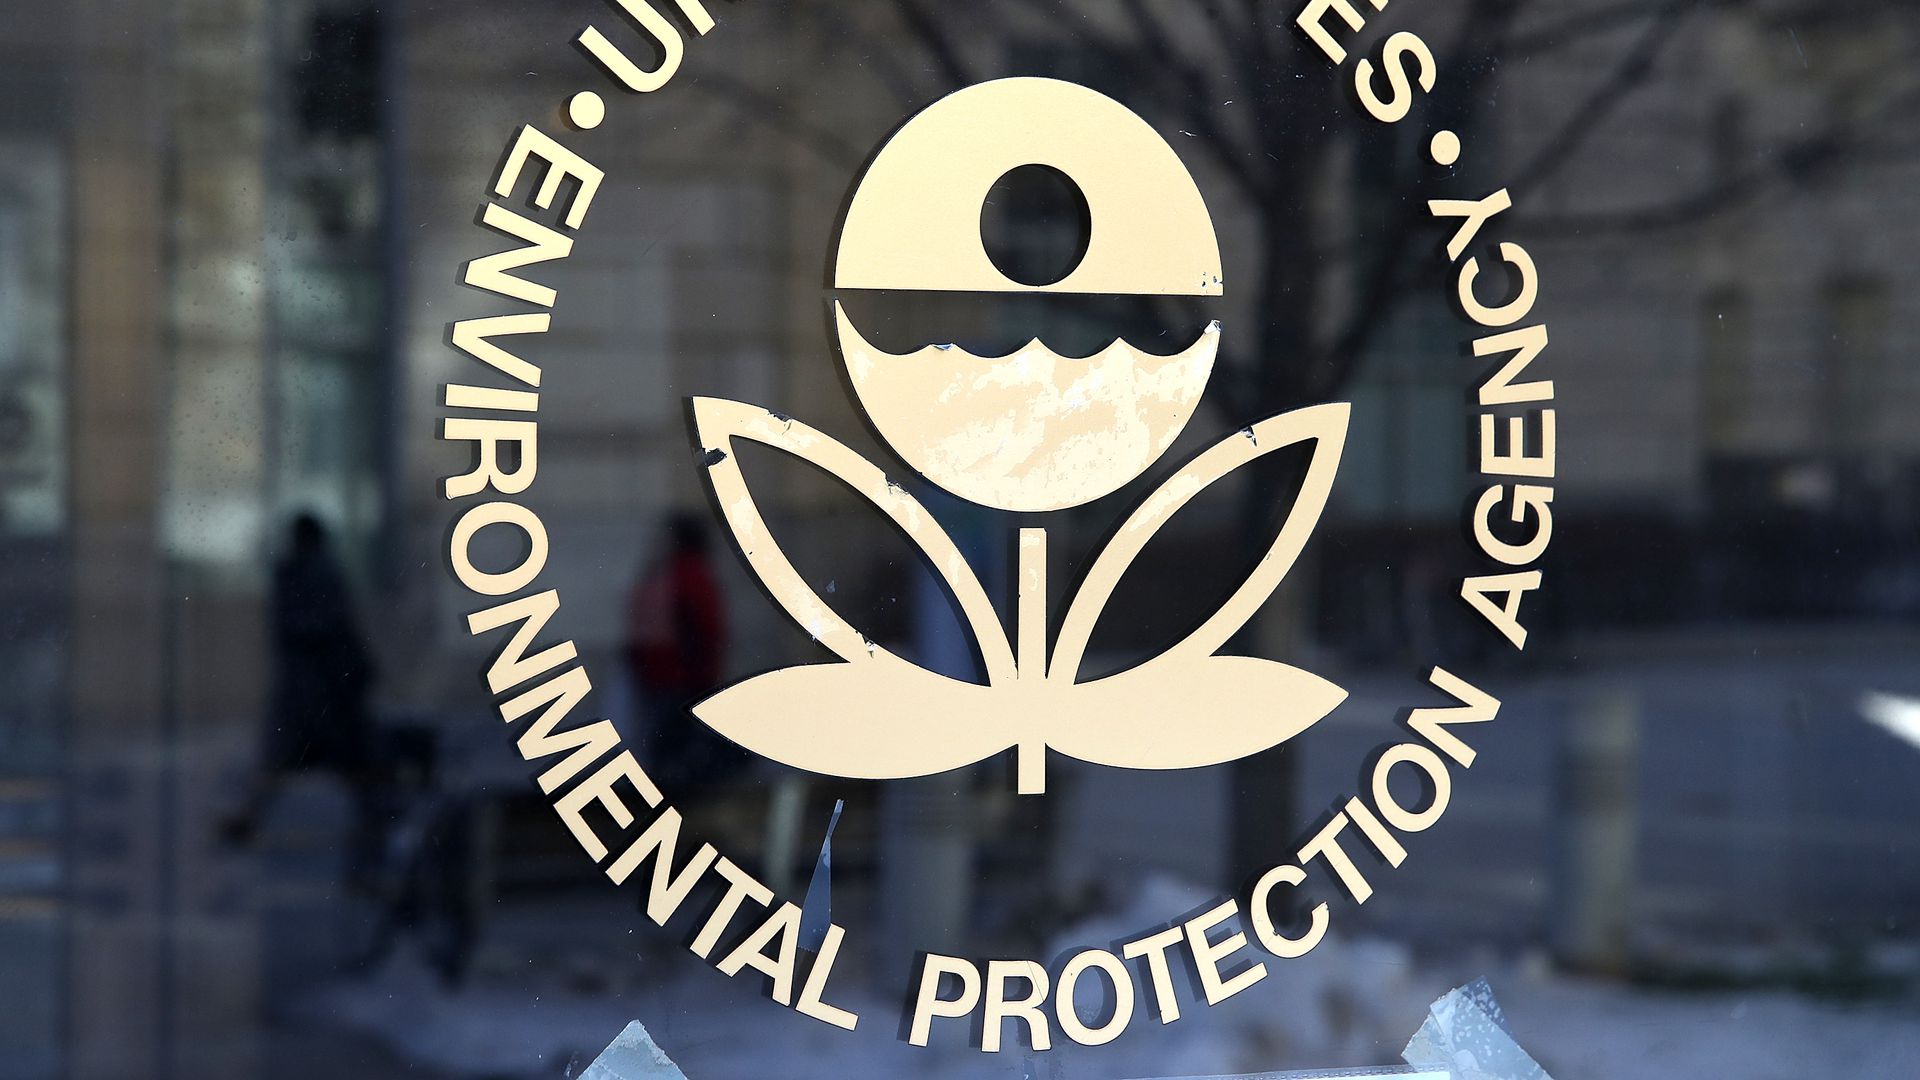 The U.S. Environmental Protection Agency's (EPA) logo